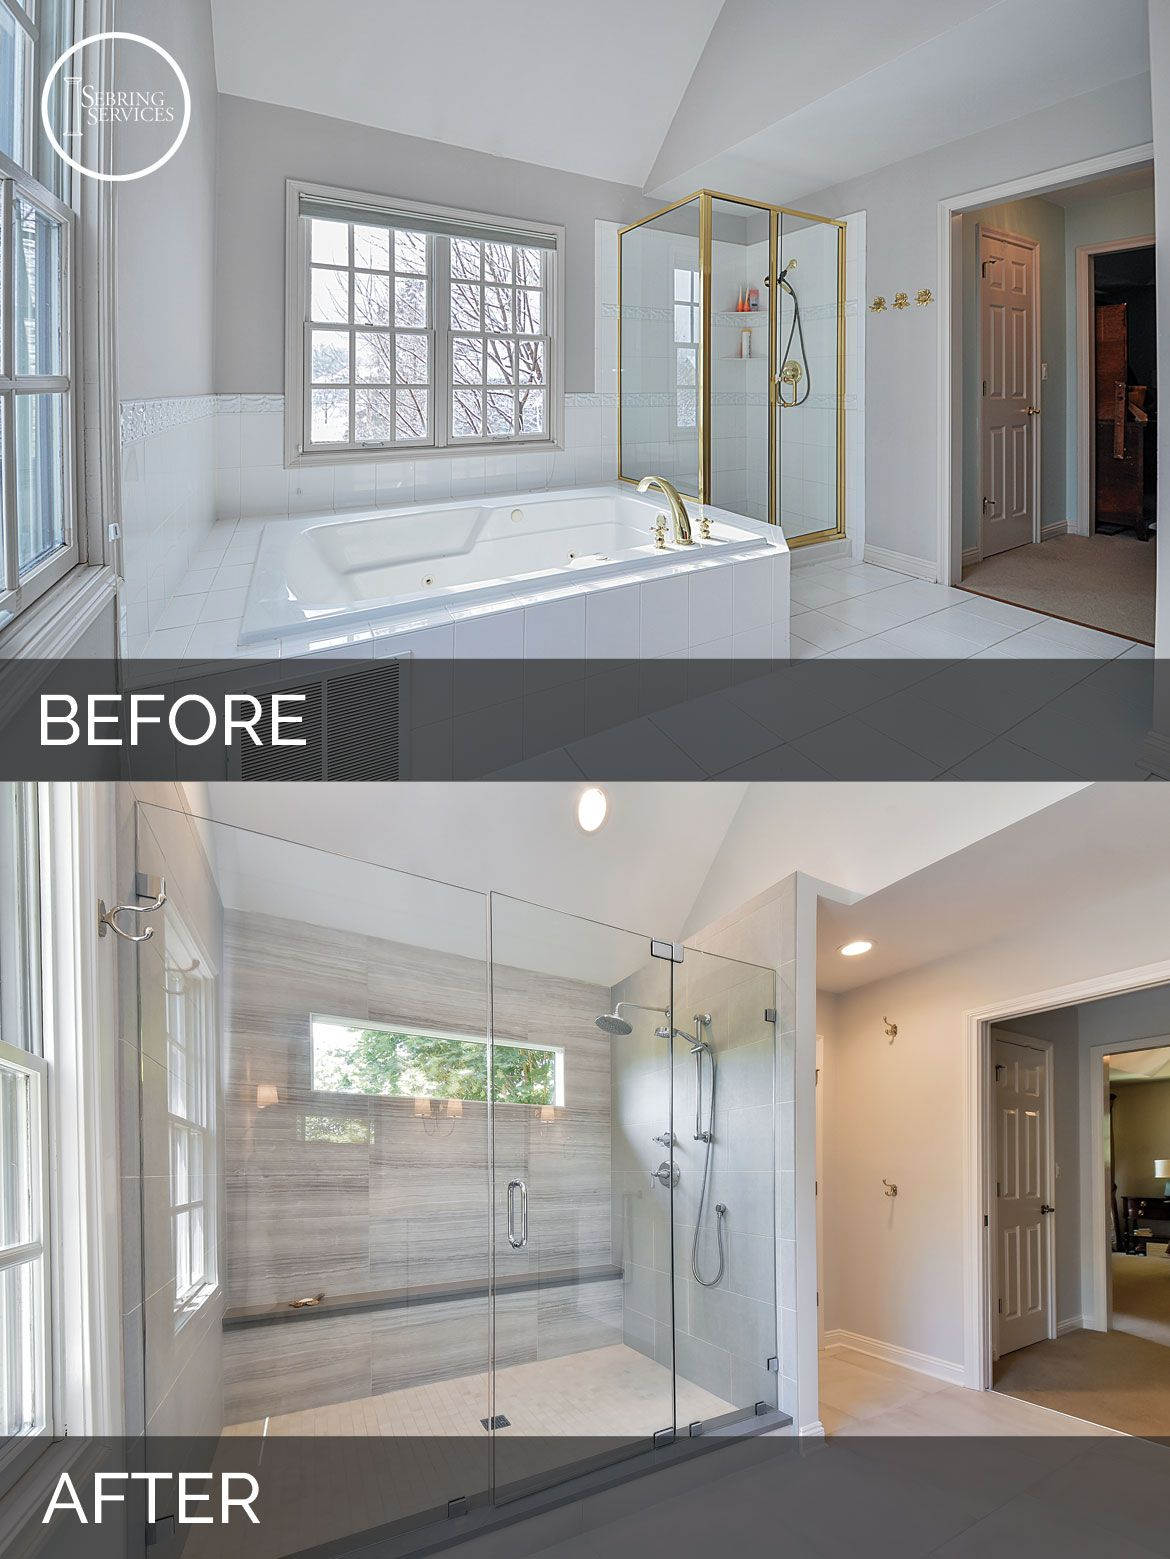 Remodel Pictures Before And After carl & susan's master bath before & after pictures | master